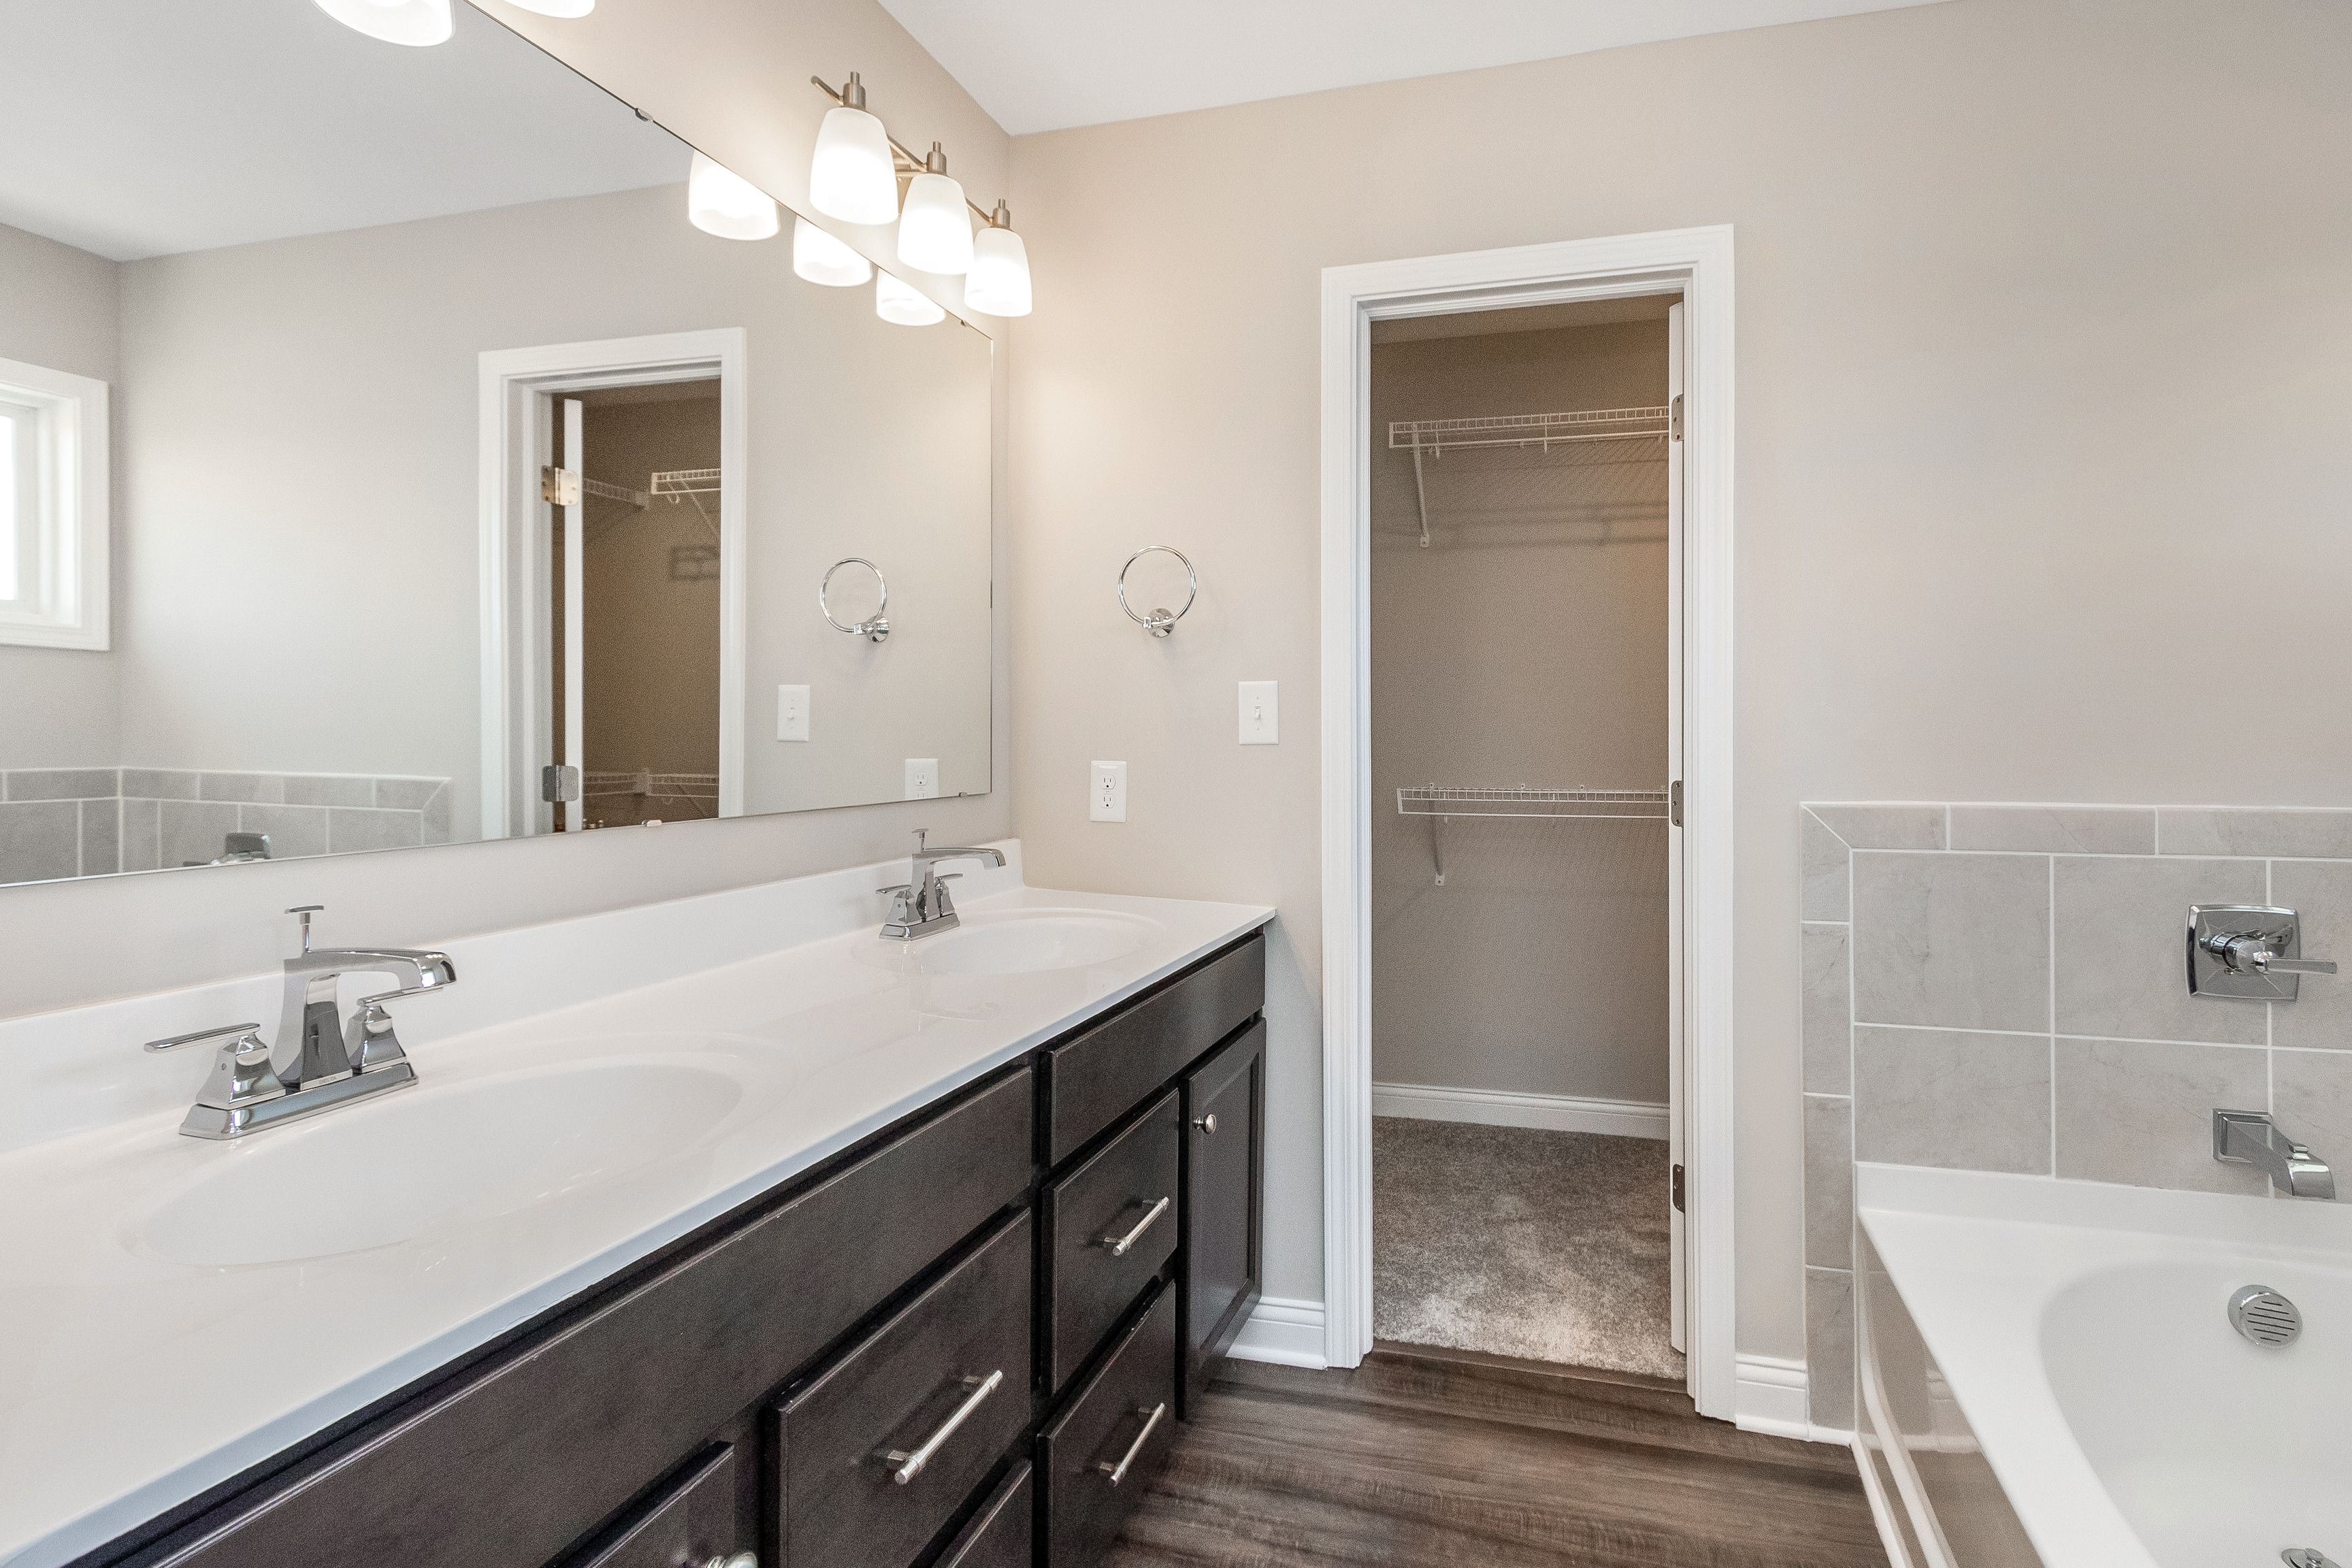 Bathroom featured in the Delaney By Fischer Homes  in Louisville, KY